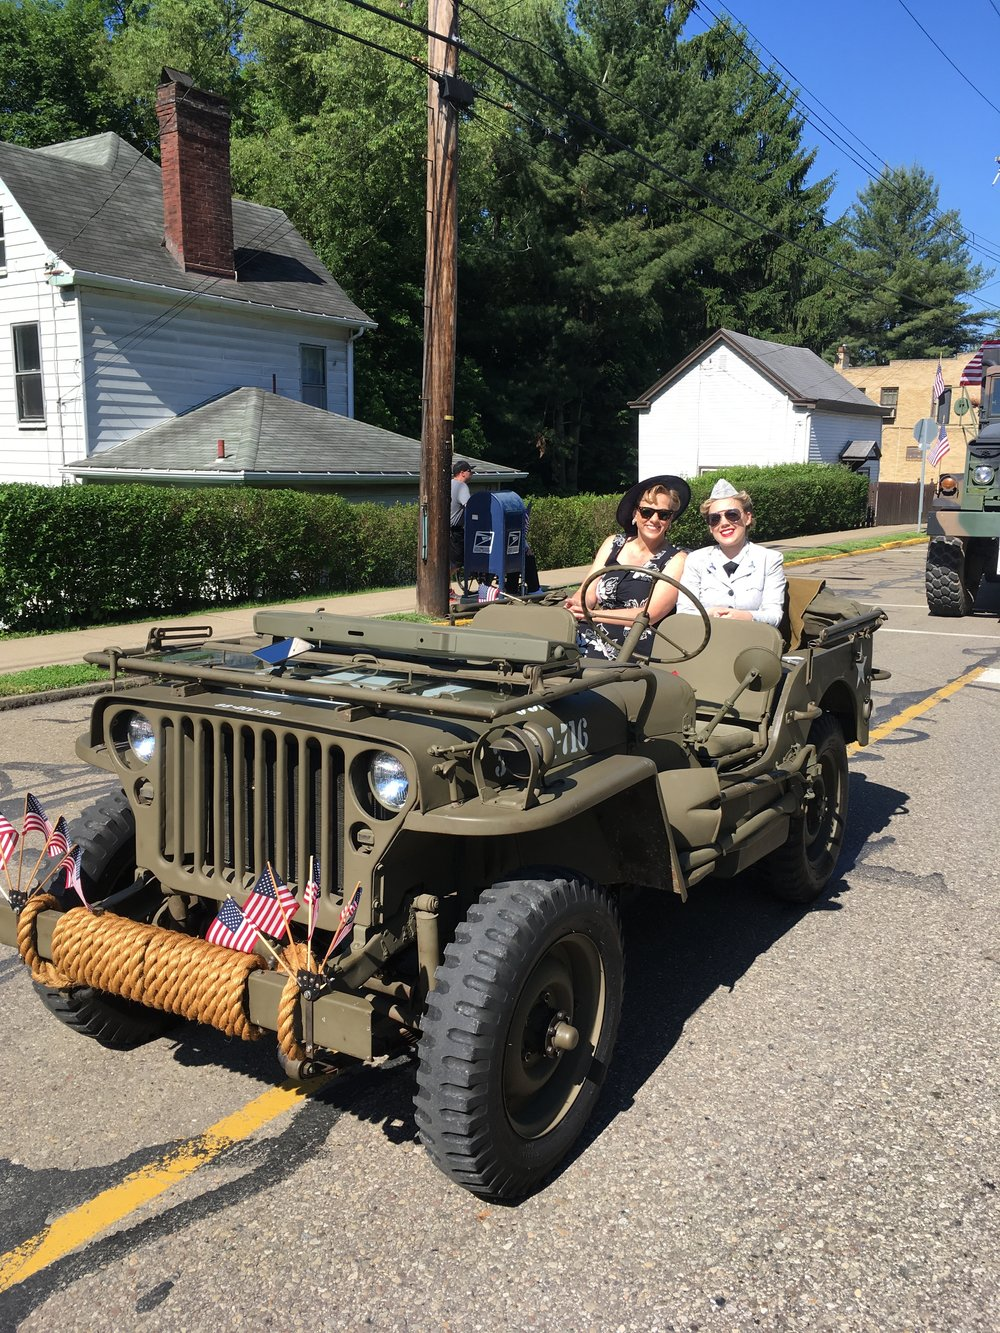 My dad owns a 1943 Willy's MB, and we have the opportunity to ride in our community parade. We reenact allied forces from World War II to honor the sacrifices of The Greatest Generation. Today, my mom dressed as a civilian, I wore an original WAVE seersucker work uniform, and my dad wore army summer khakis with the 8th service command patch. For four years now, I have had the honor of singing the national anthem at the ceremony following the parade. I hope you celebrate this day with your community and remember those that made the ultimate sacrifice defending freedom.